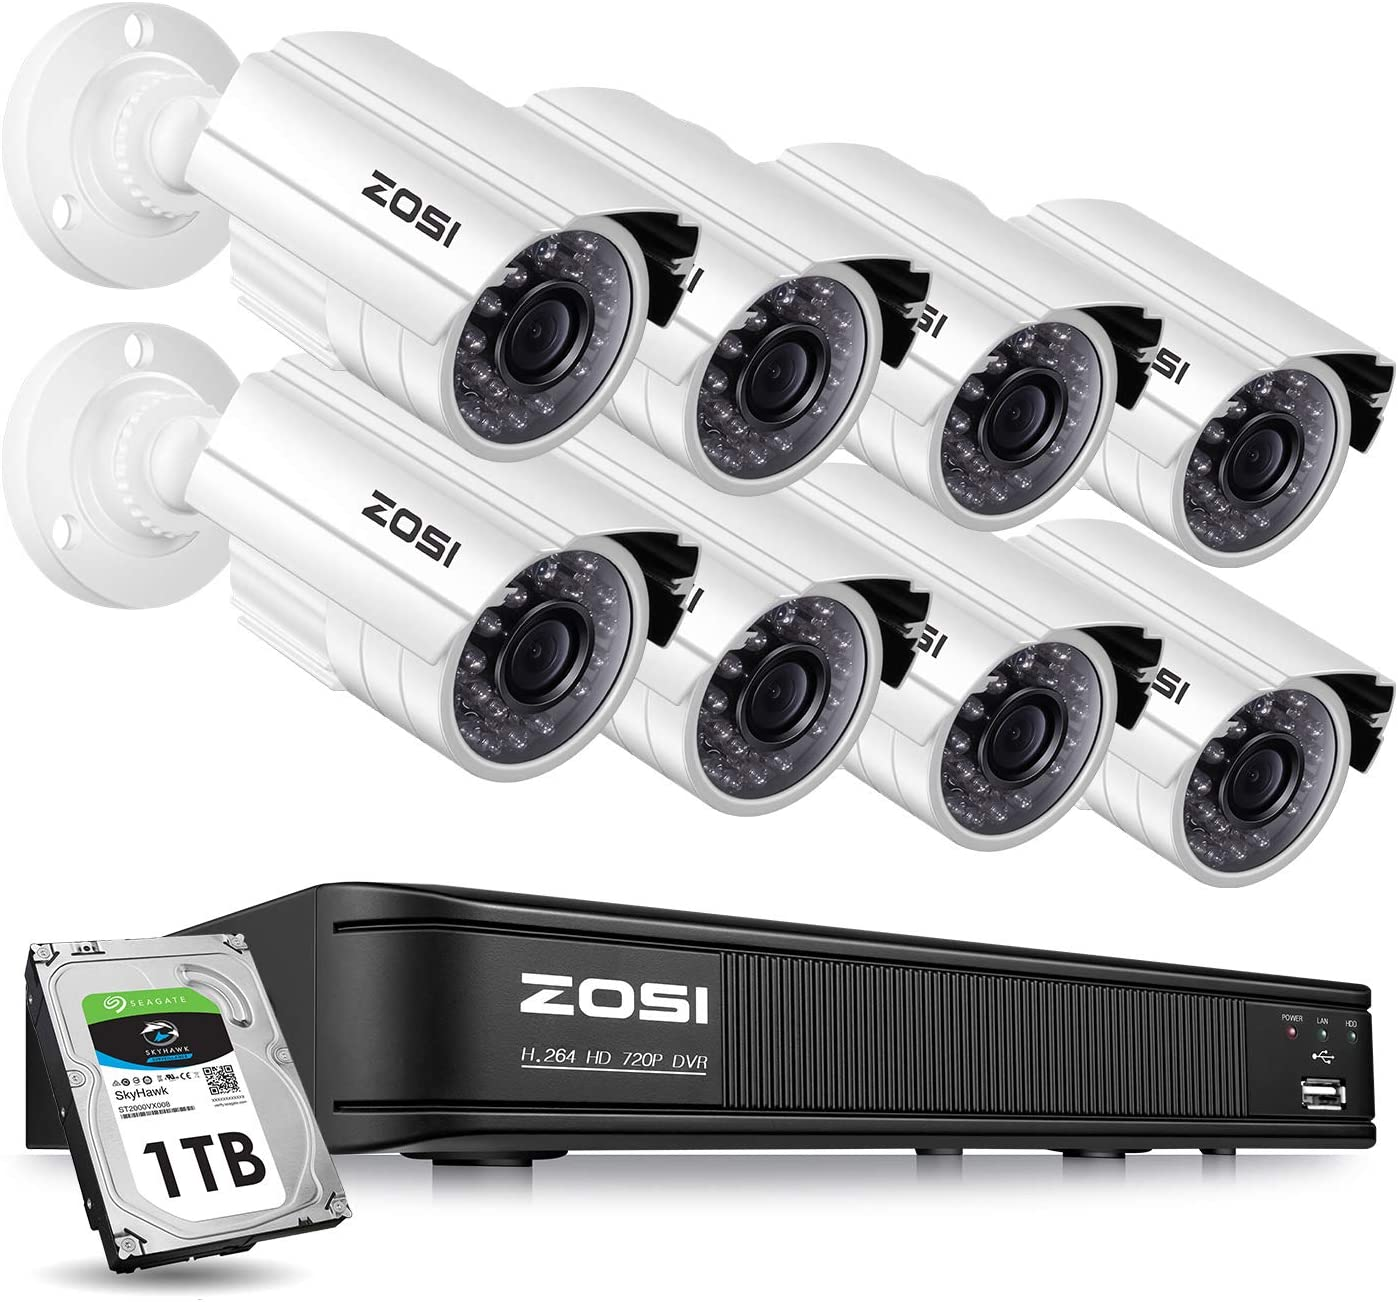 ZOSI 8 Channel Video Security Camera System,1080P Lite 720p Surveillance CCTV DVR and 8 x 720p Weatherproof Bullet Camera Indoor Outdoor with 65ft 20m IR Night Vision LEDs- 1TB HDD Built-In